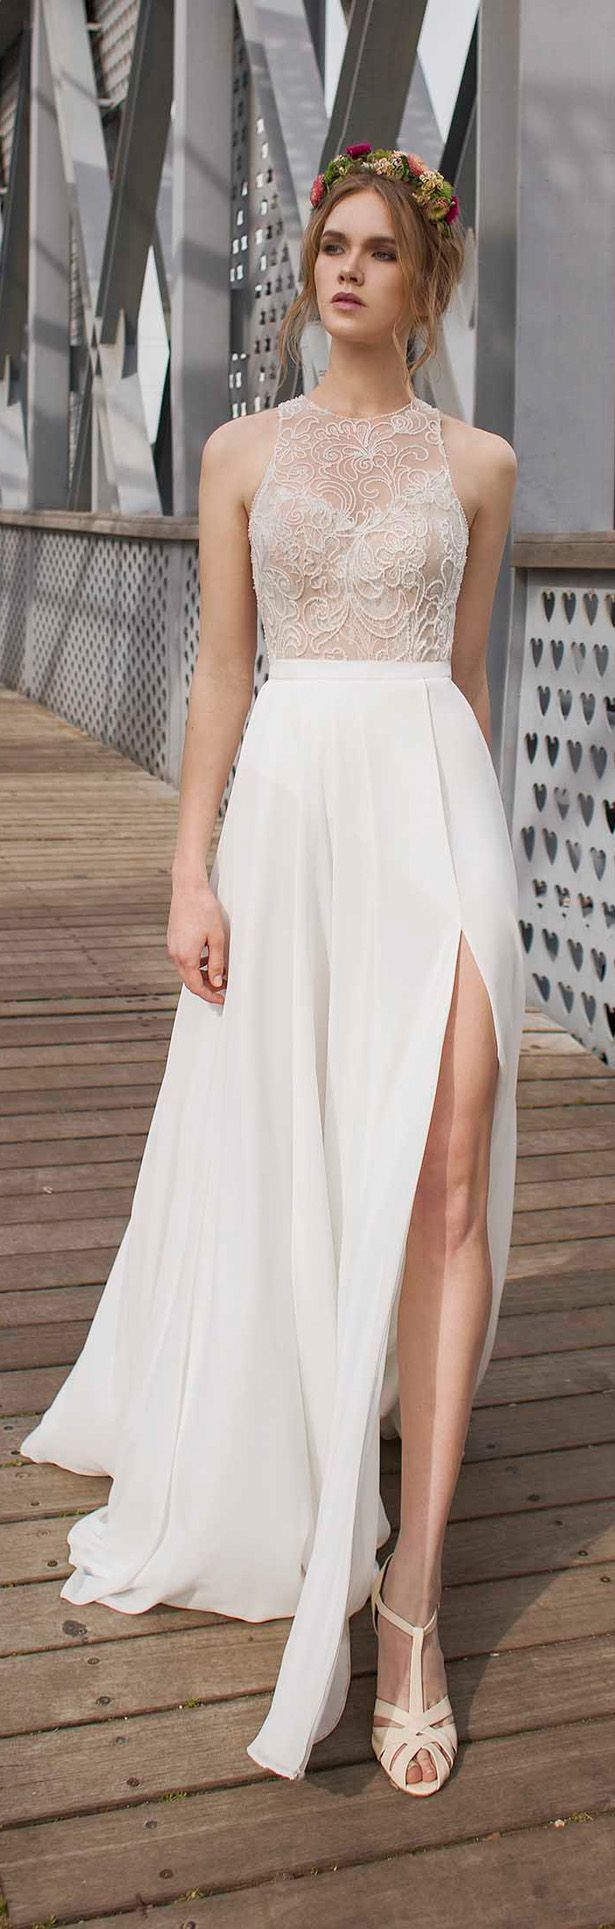 wedding dresses dresses 2016 elegant wedding dress wedding wedding